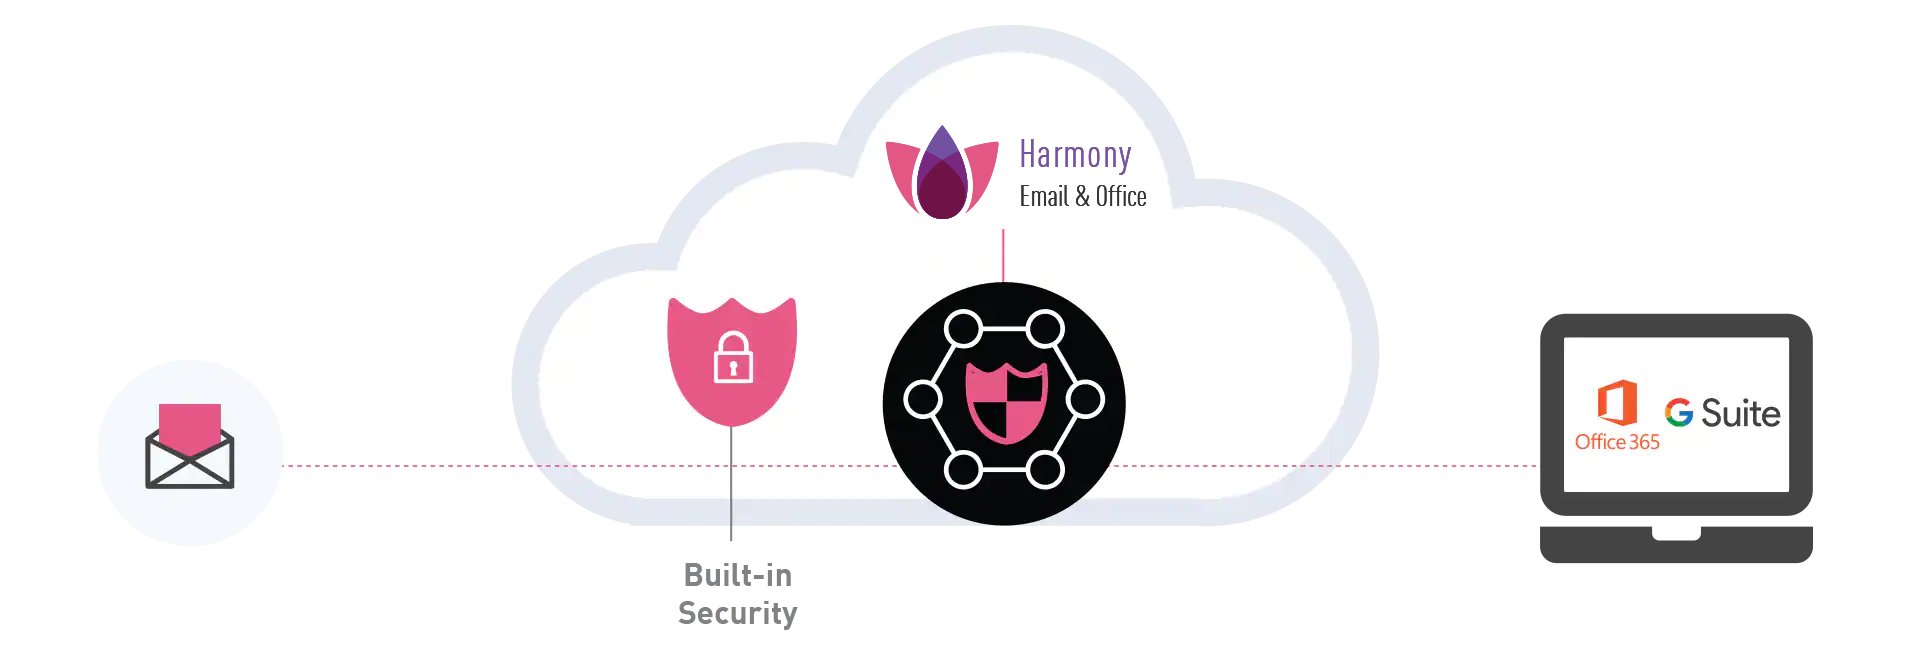 Harmony Email & Office diagram with built-in security